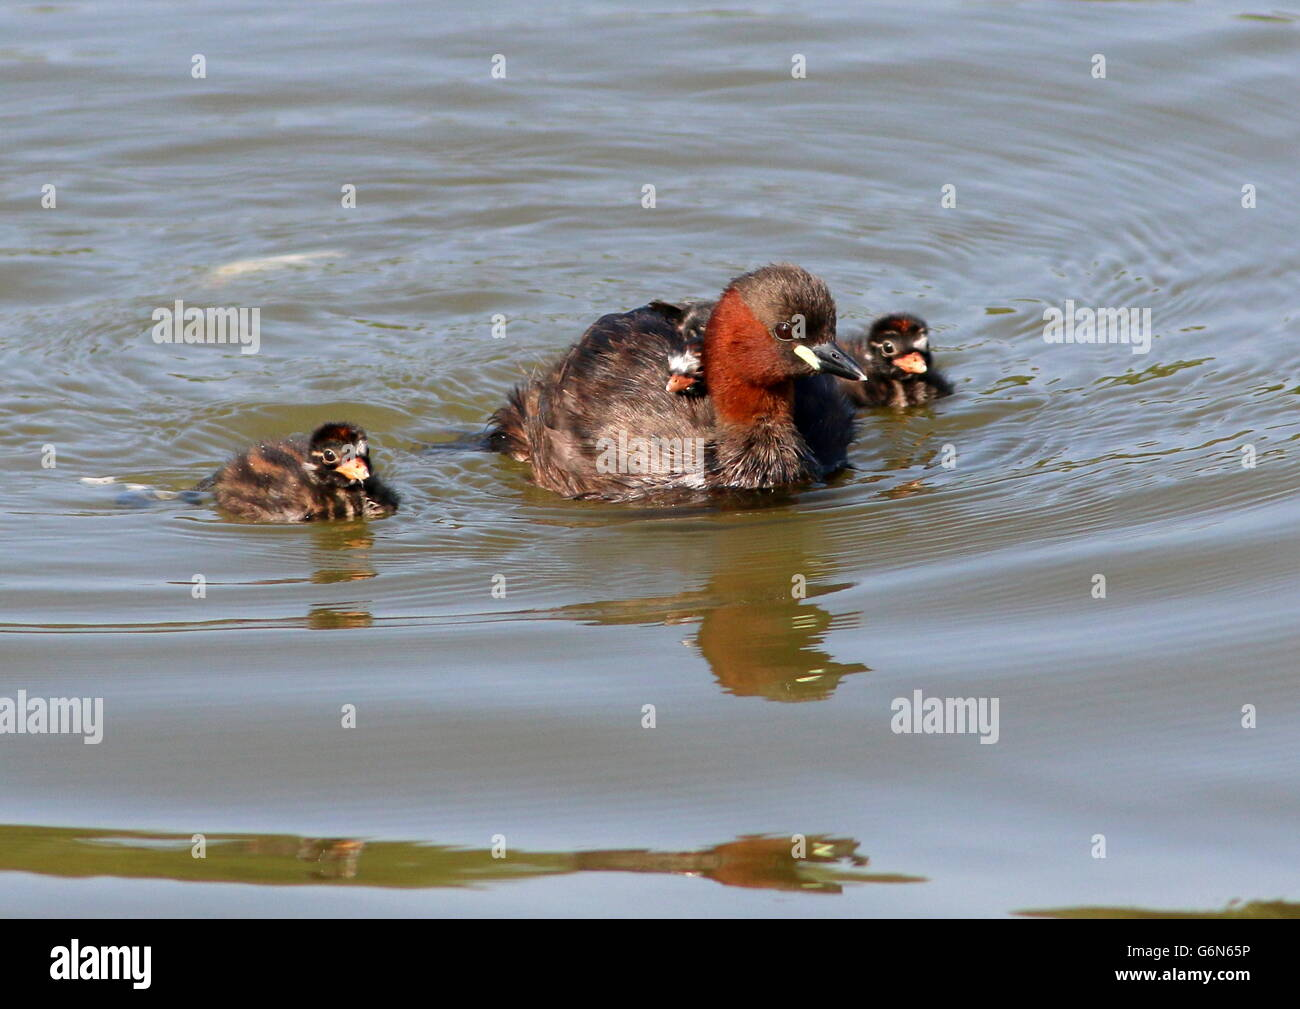 Mature Eurasian Little Grebe (Tachybaptus ruficollis) with two young chicks swimming next to her, another baby riding - Stock Image